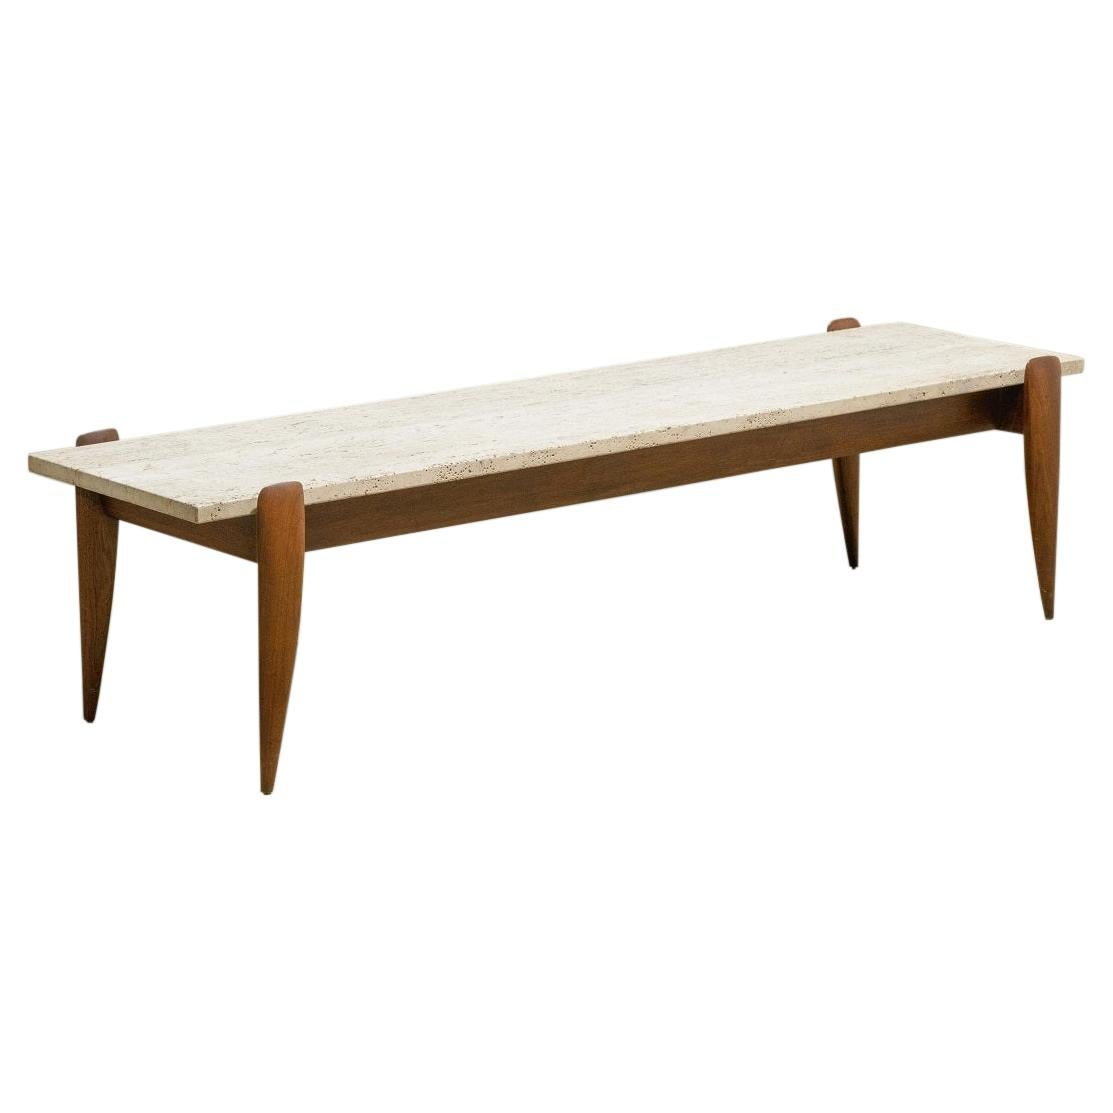 Gio Ponti for Singer & Sons Travertine Top Coffee Table